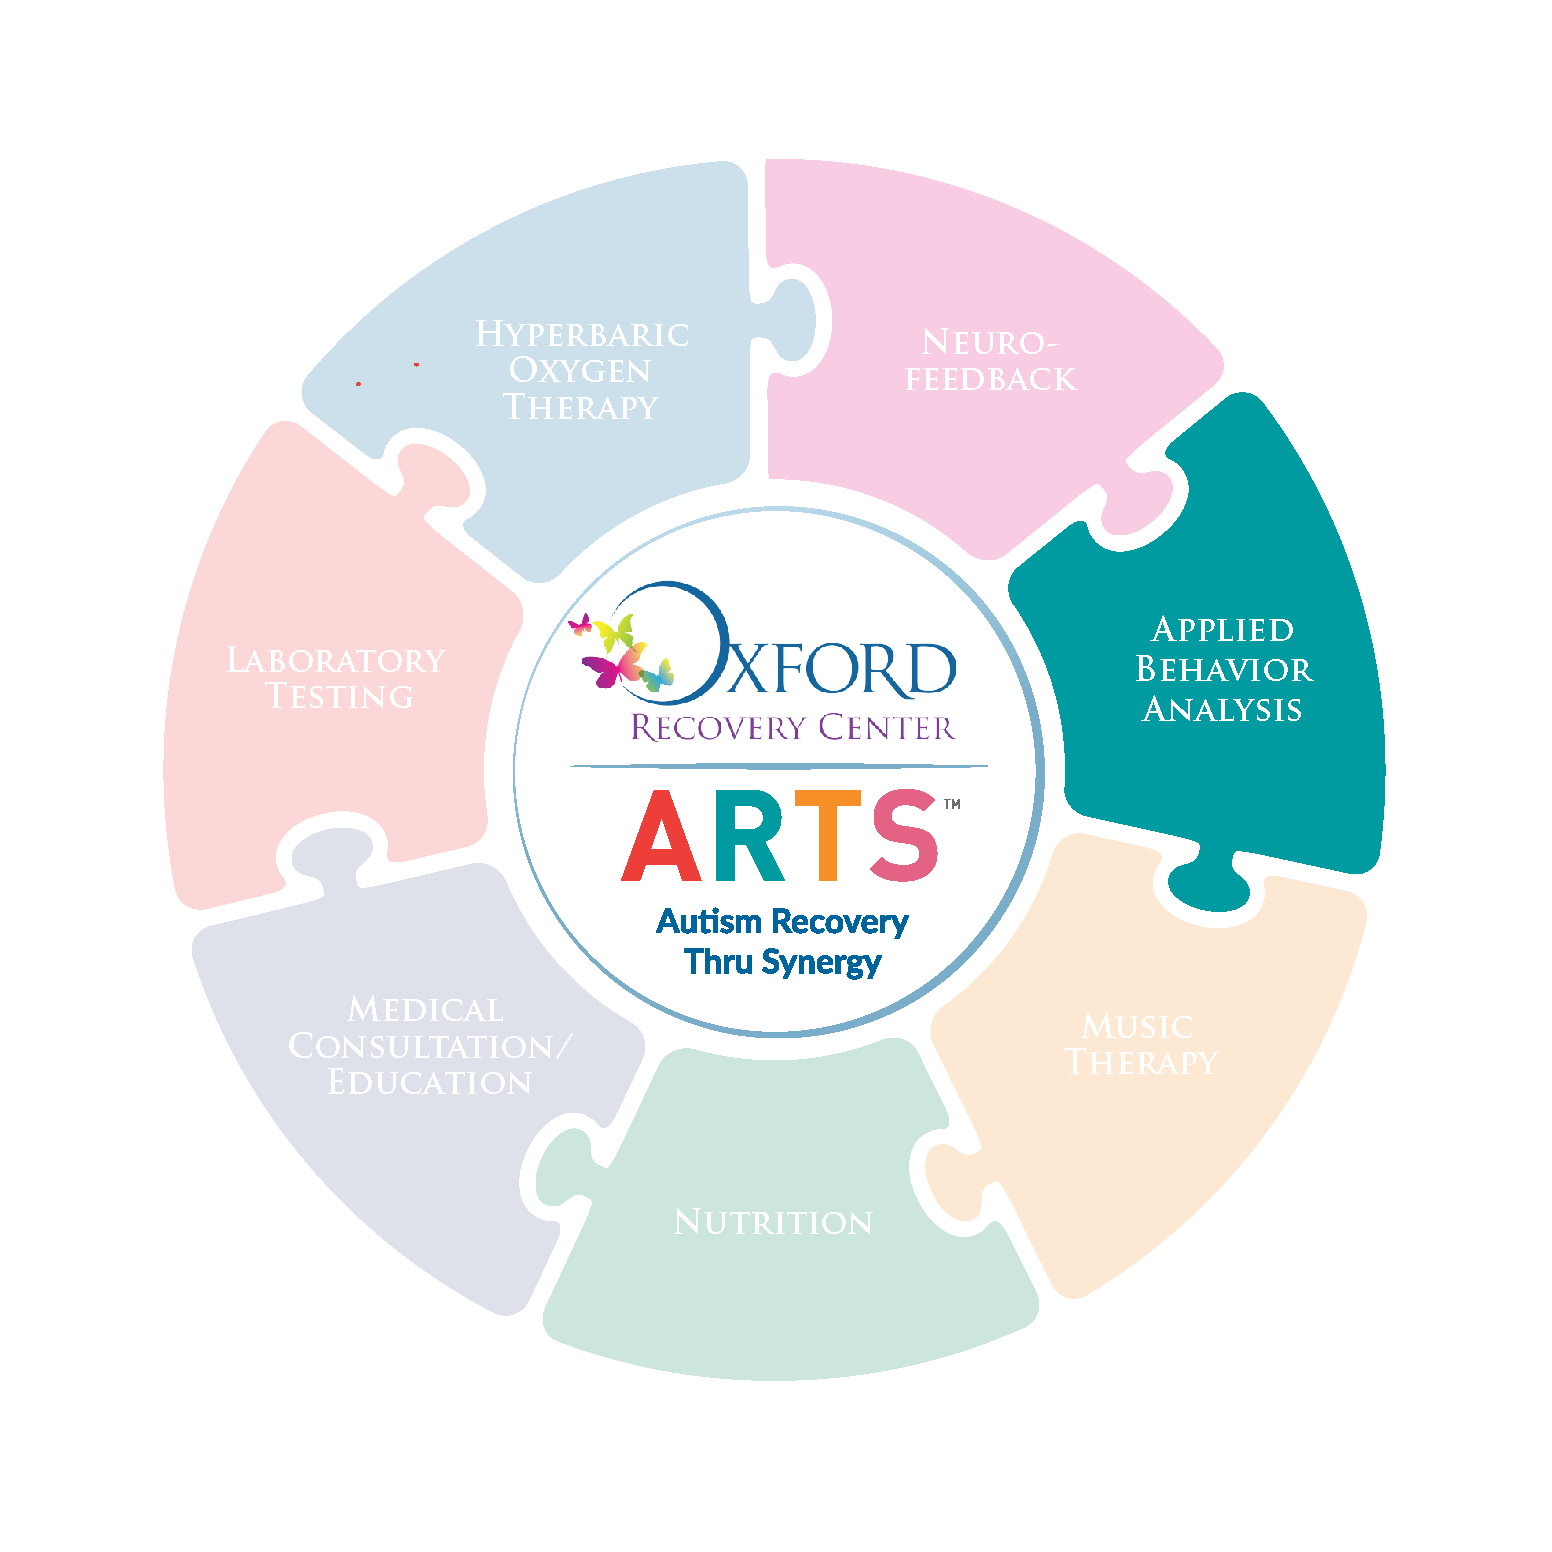 Arts Program Applied Behavior Analysis